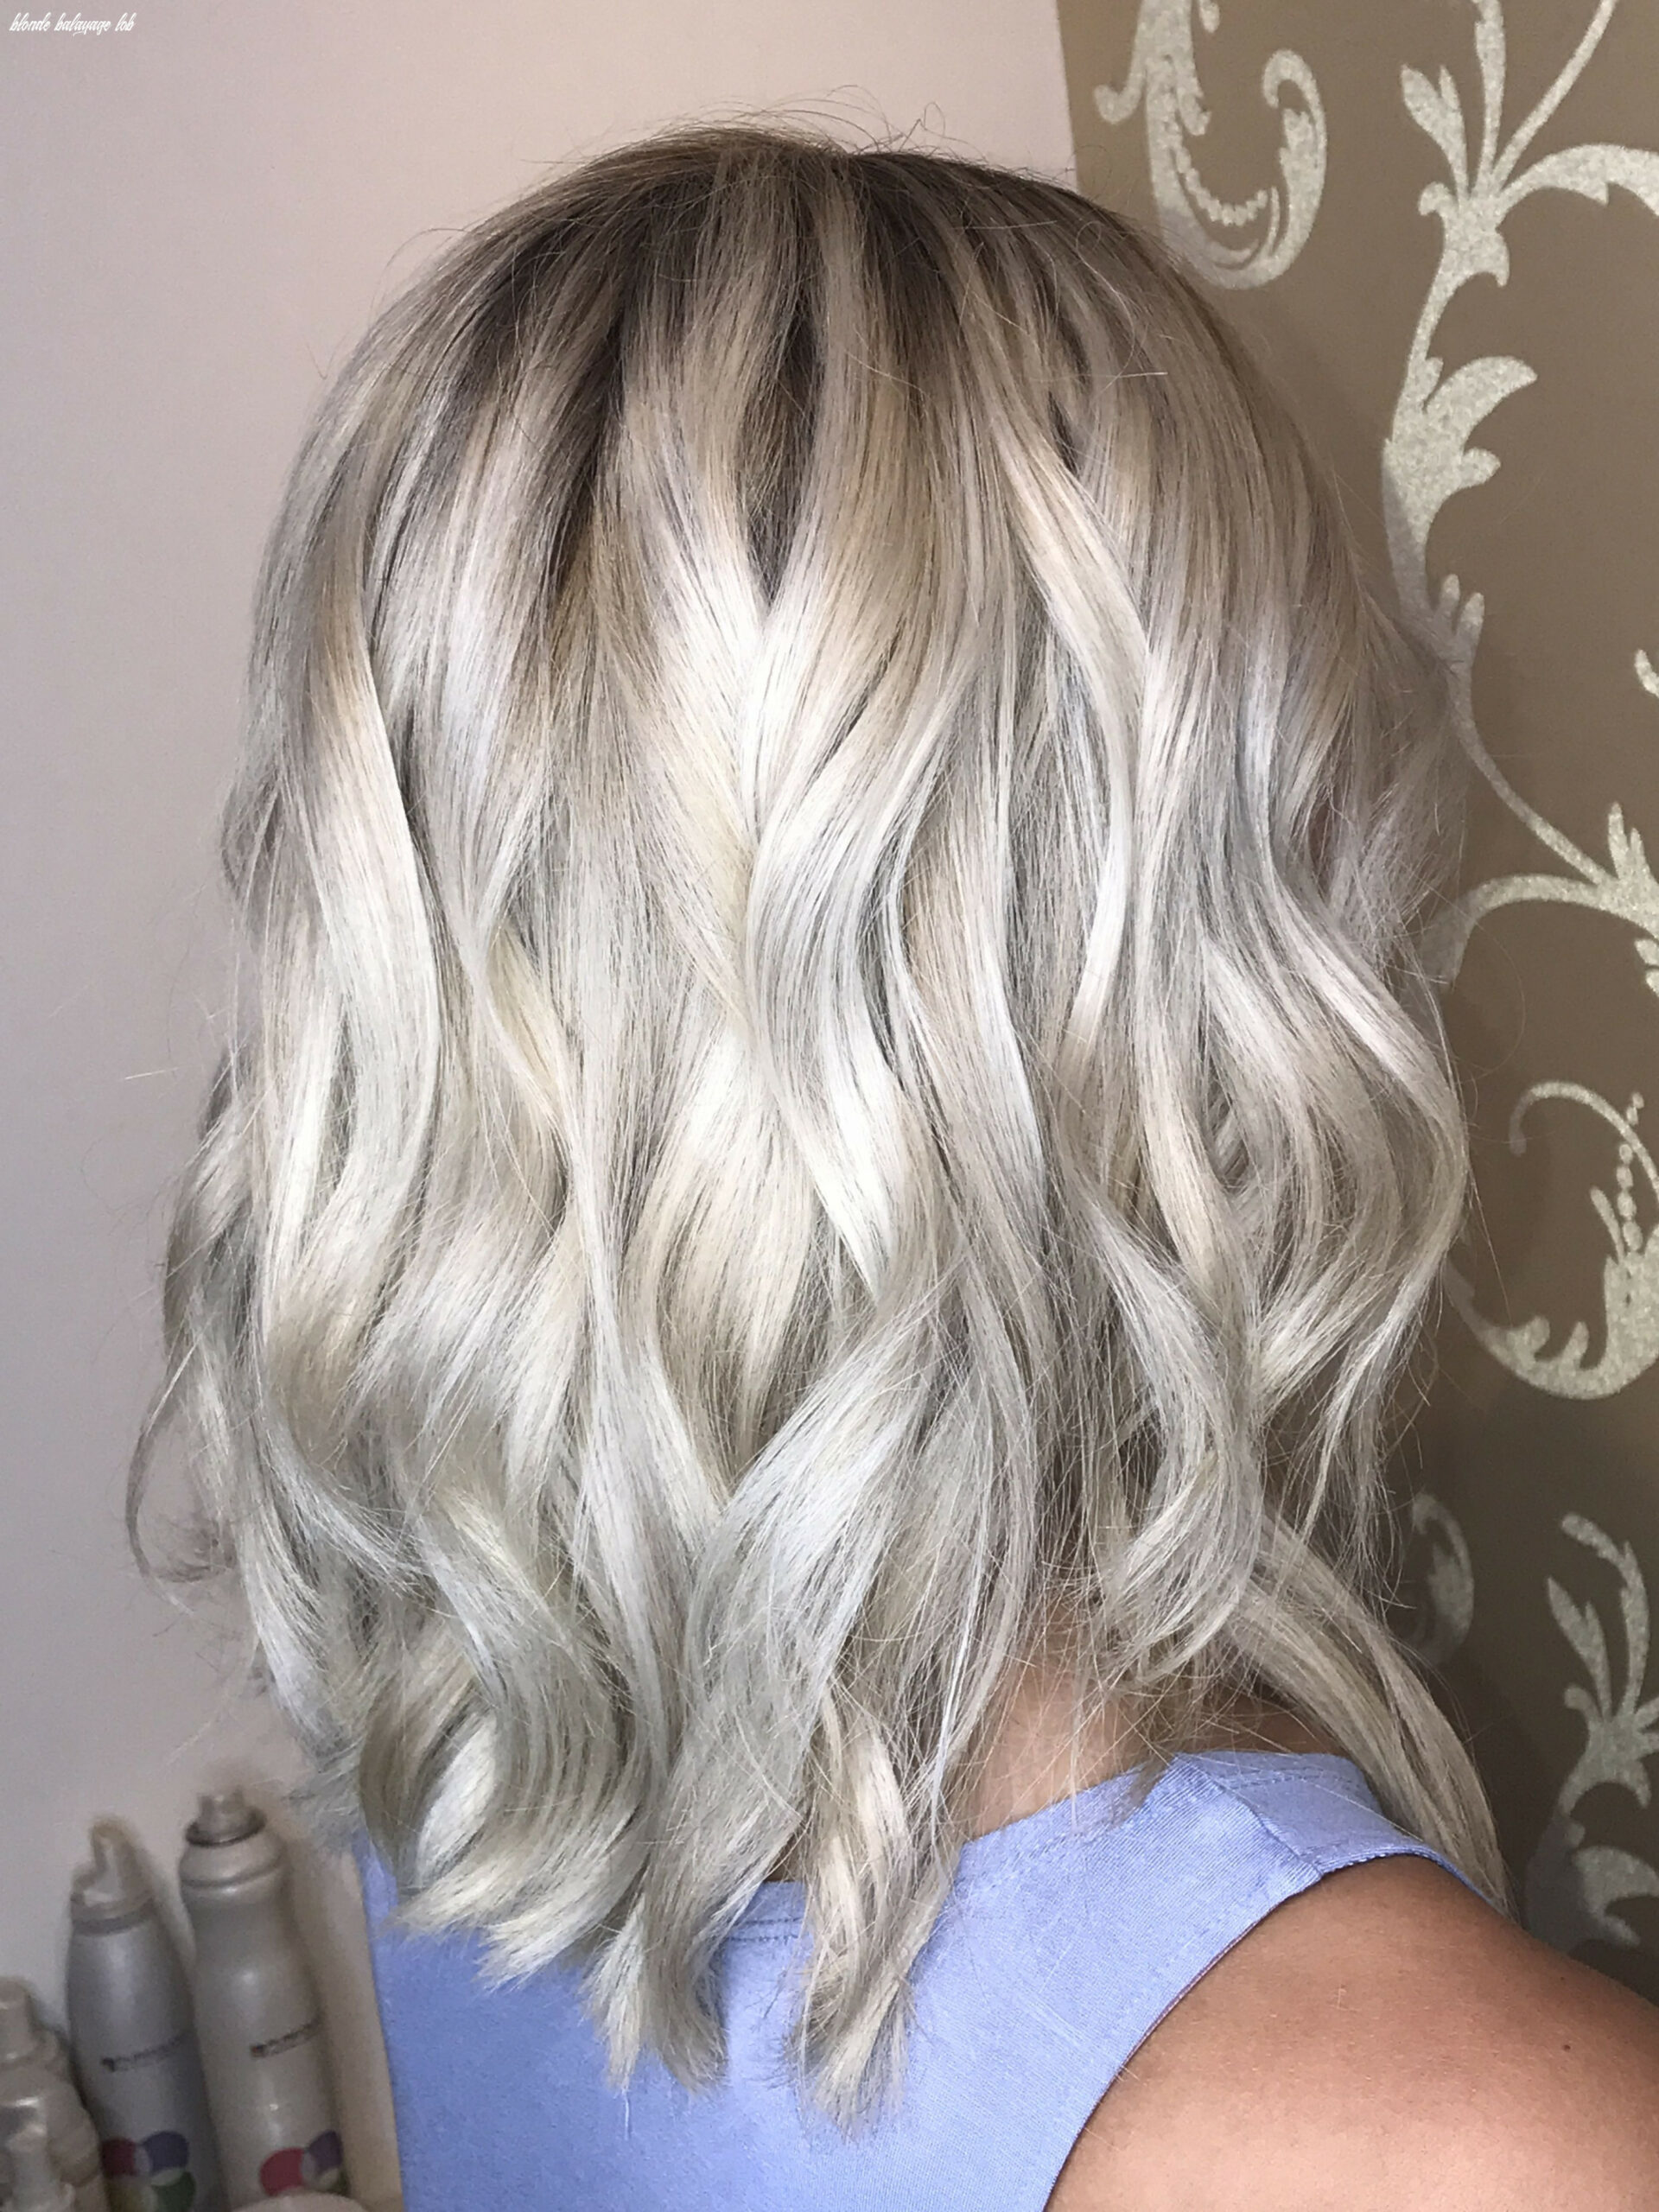 Icy blonde balayage and rooted lob | icy blonde, blonde balayage